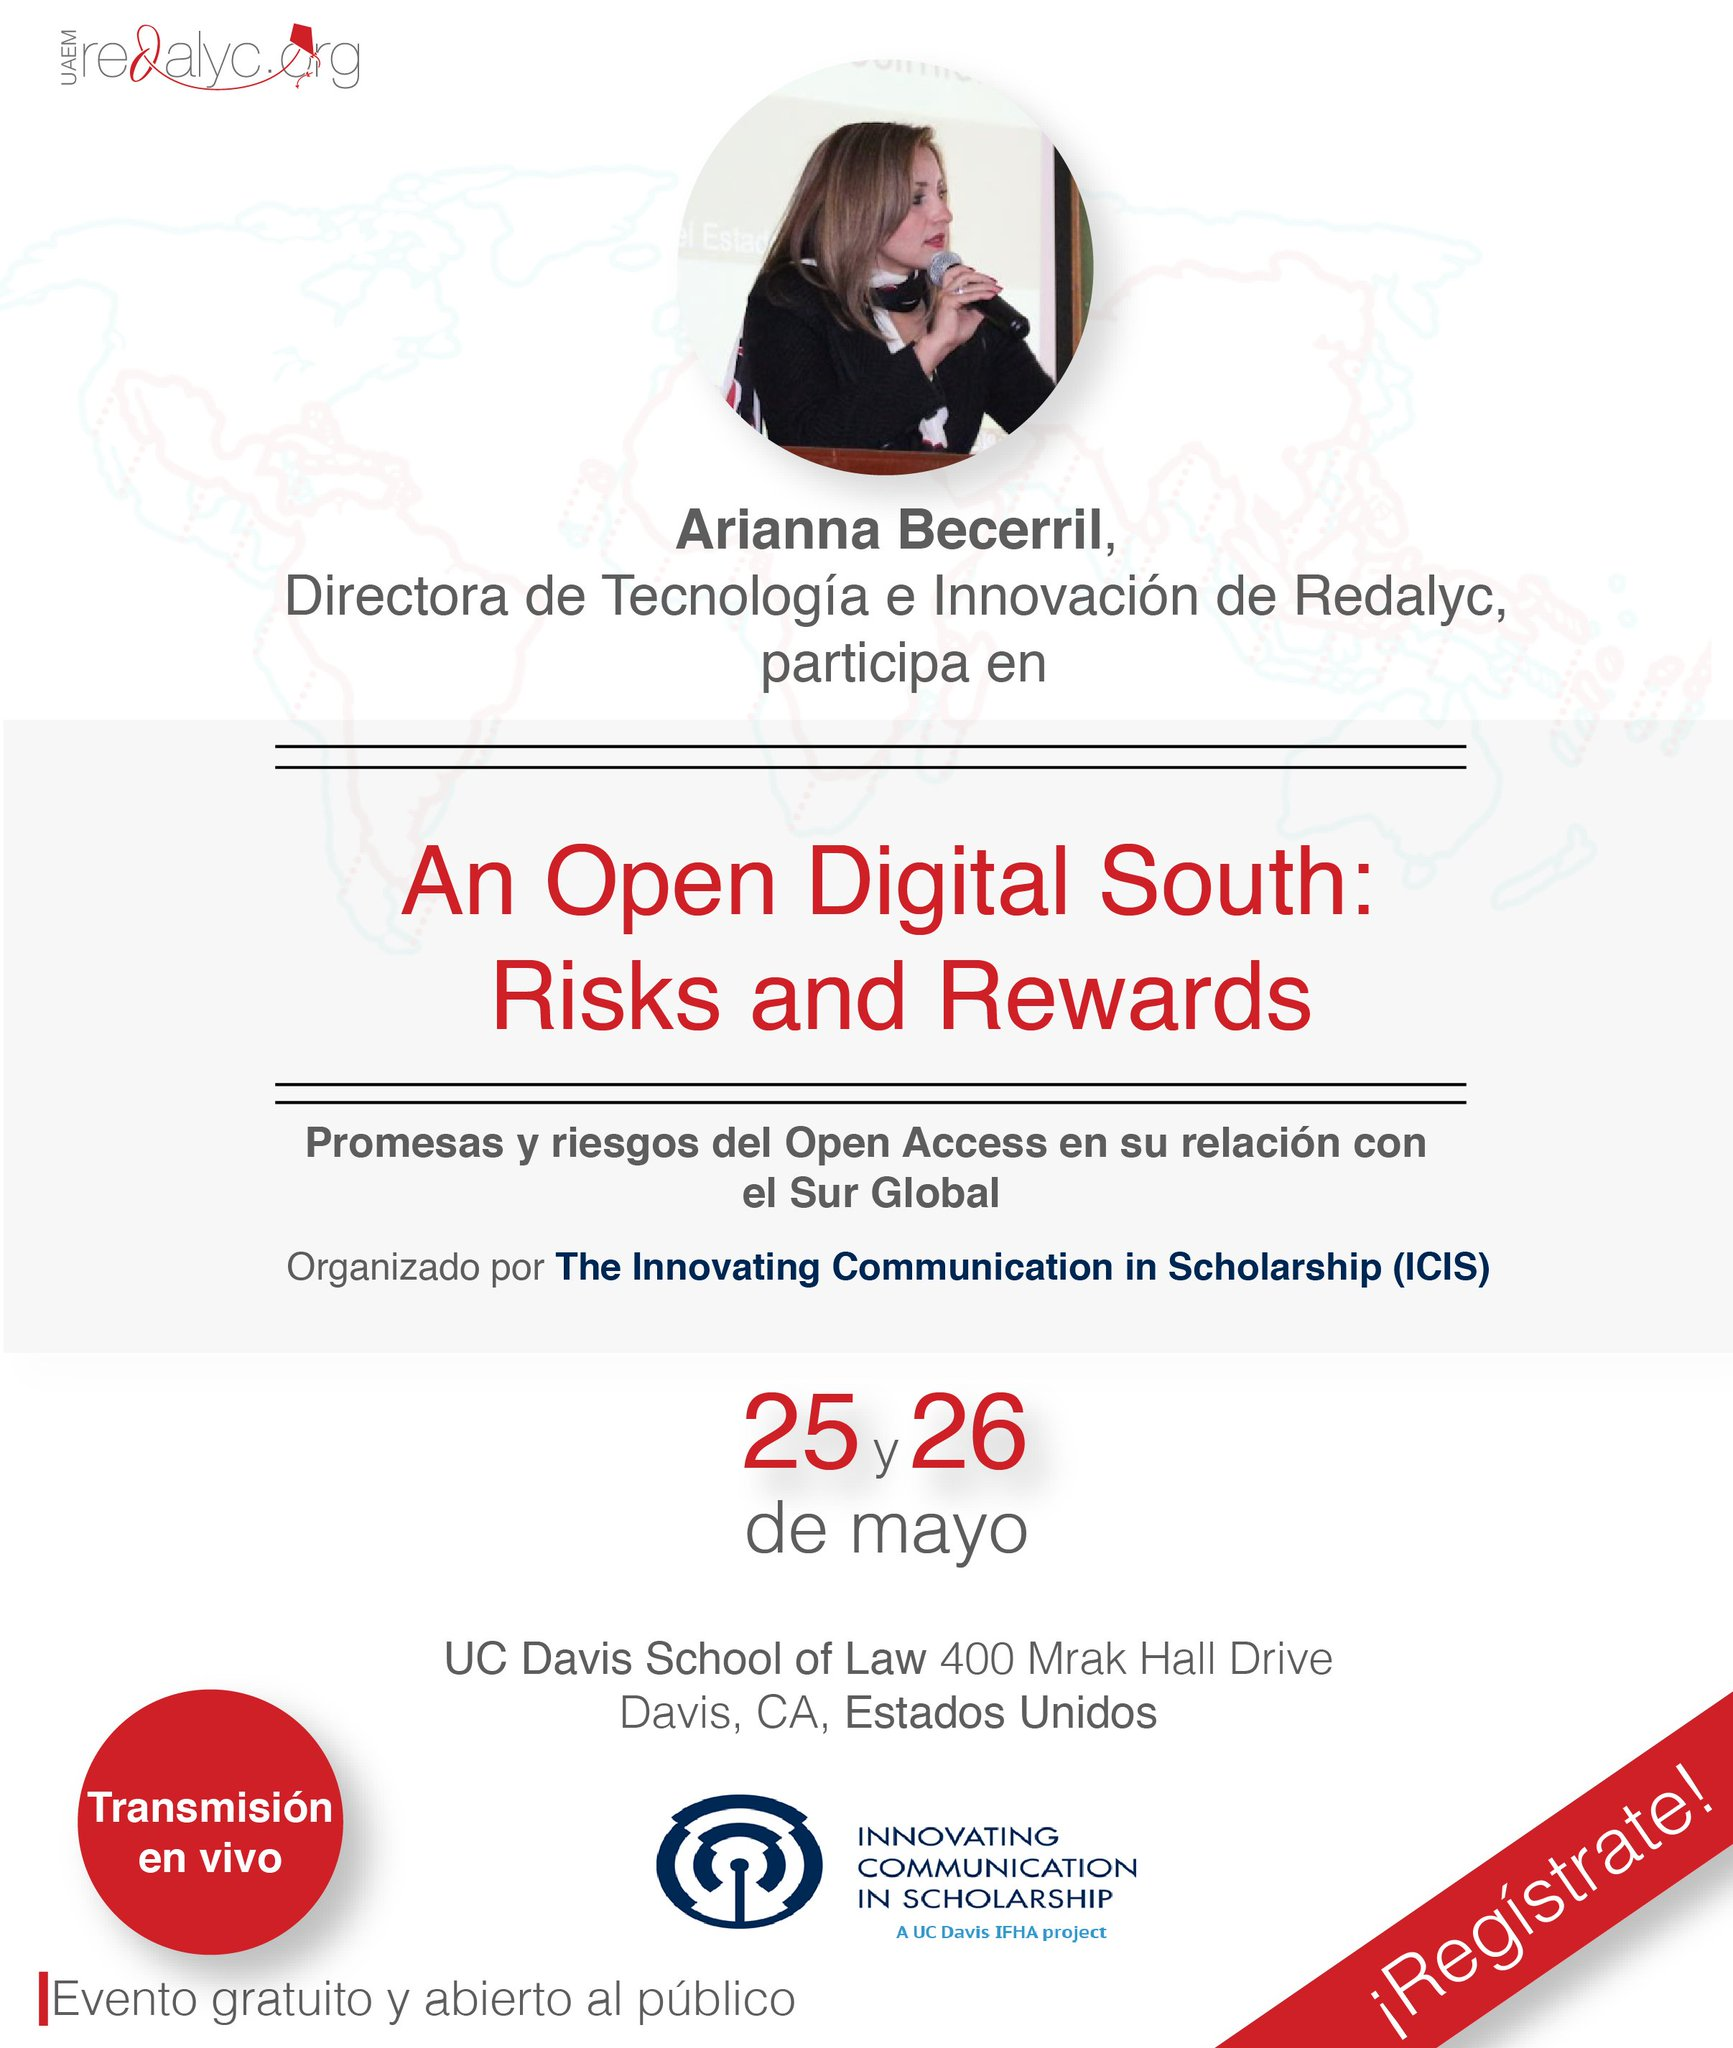 #AgendaRedalyc | An Open Digital South: Risks and Rewards. Mayo 25 y 26. #OpenGlobalSouth Registro: https://t.co/dK62TUsUUW https://t.co/iNQ6yfwJWk